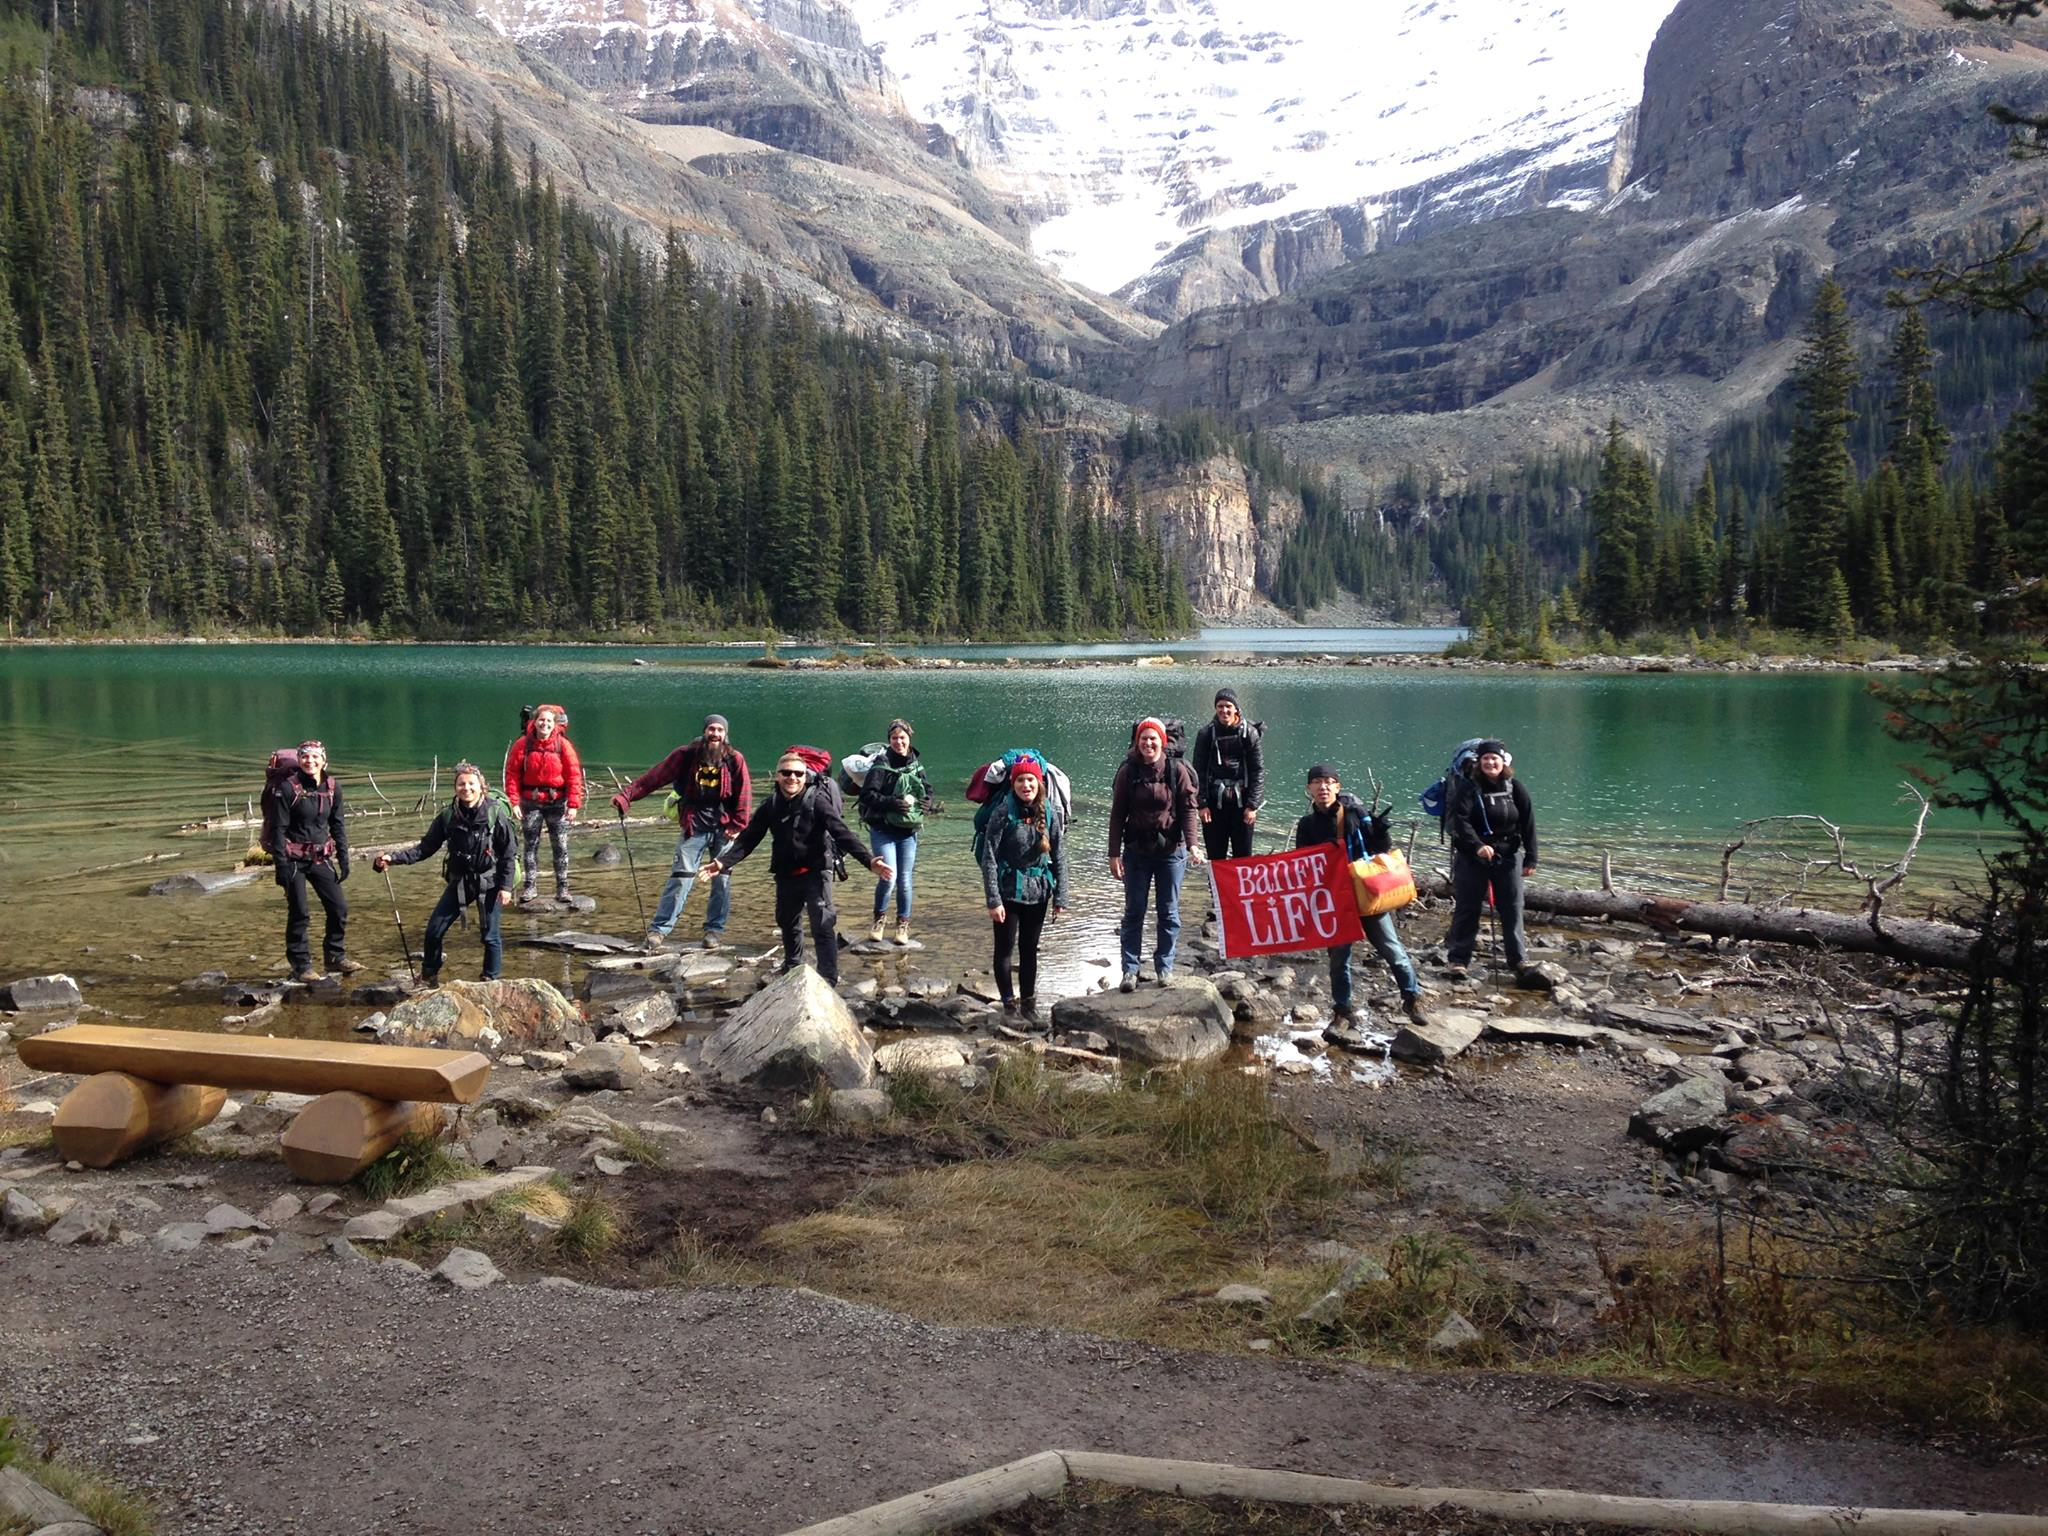 BanffLIFE cover hike photo.jpg